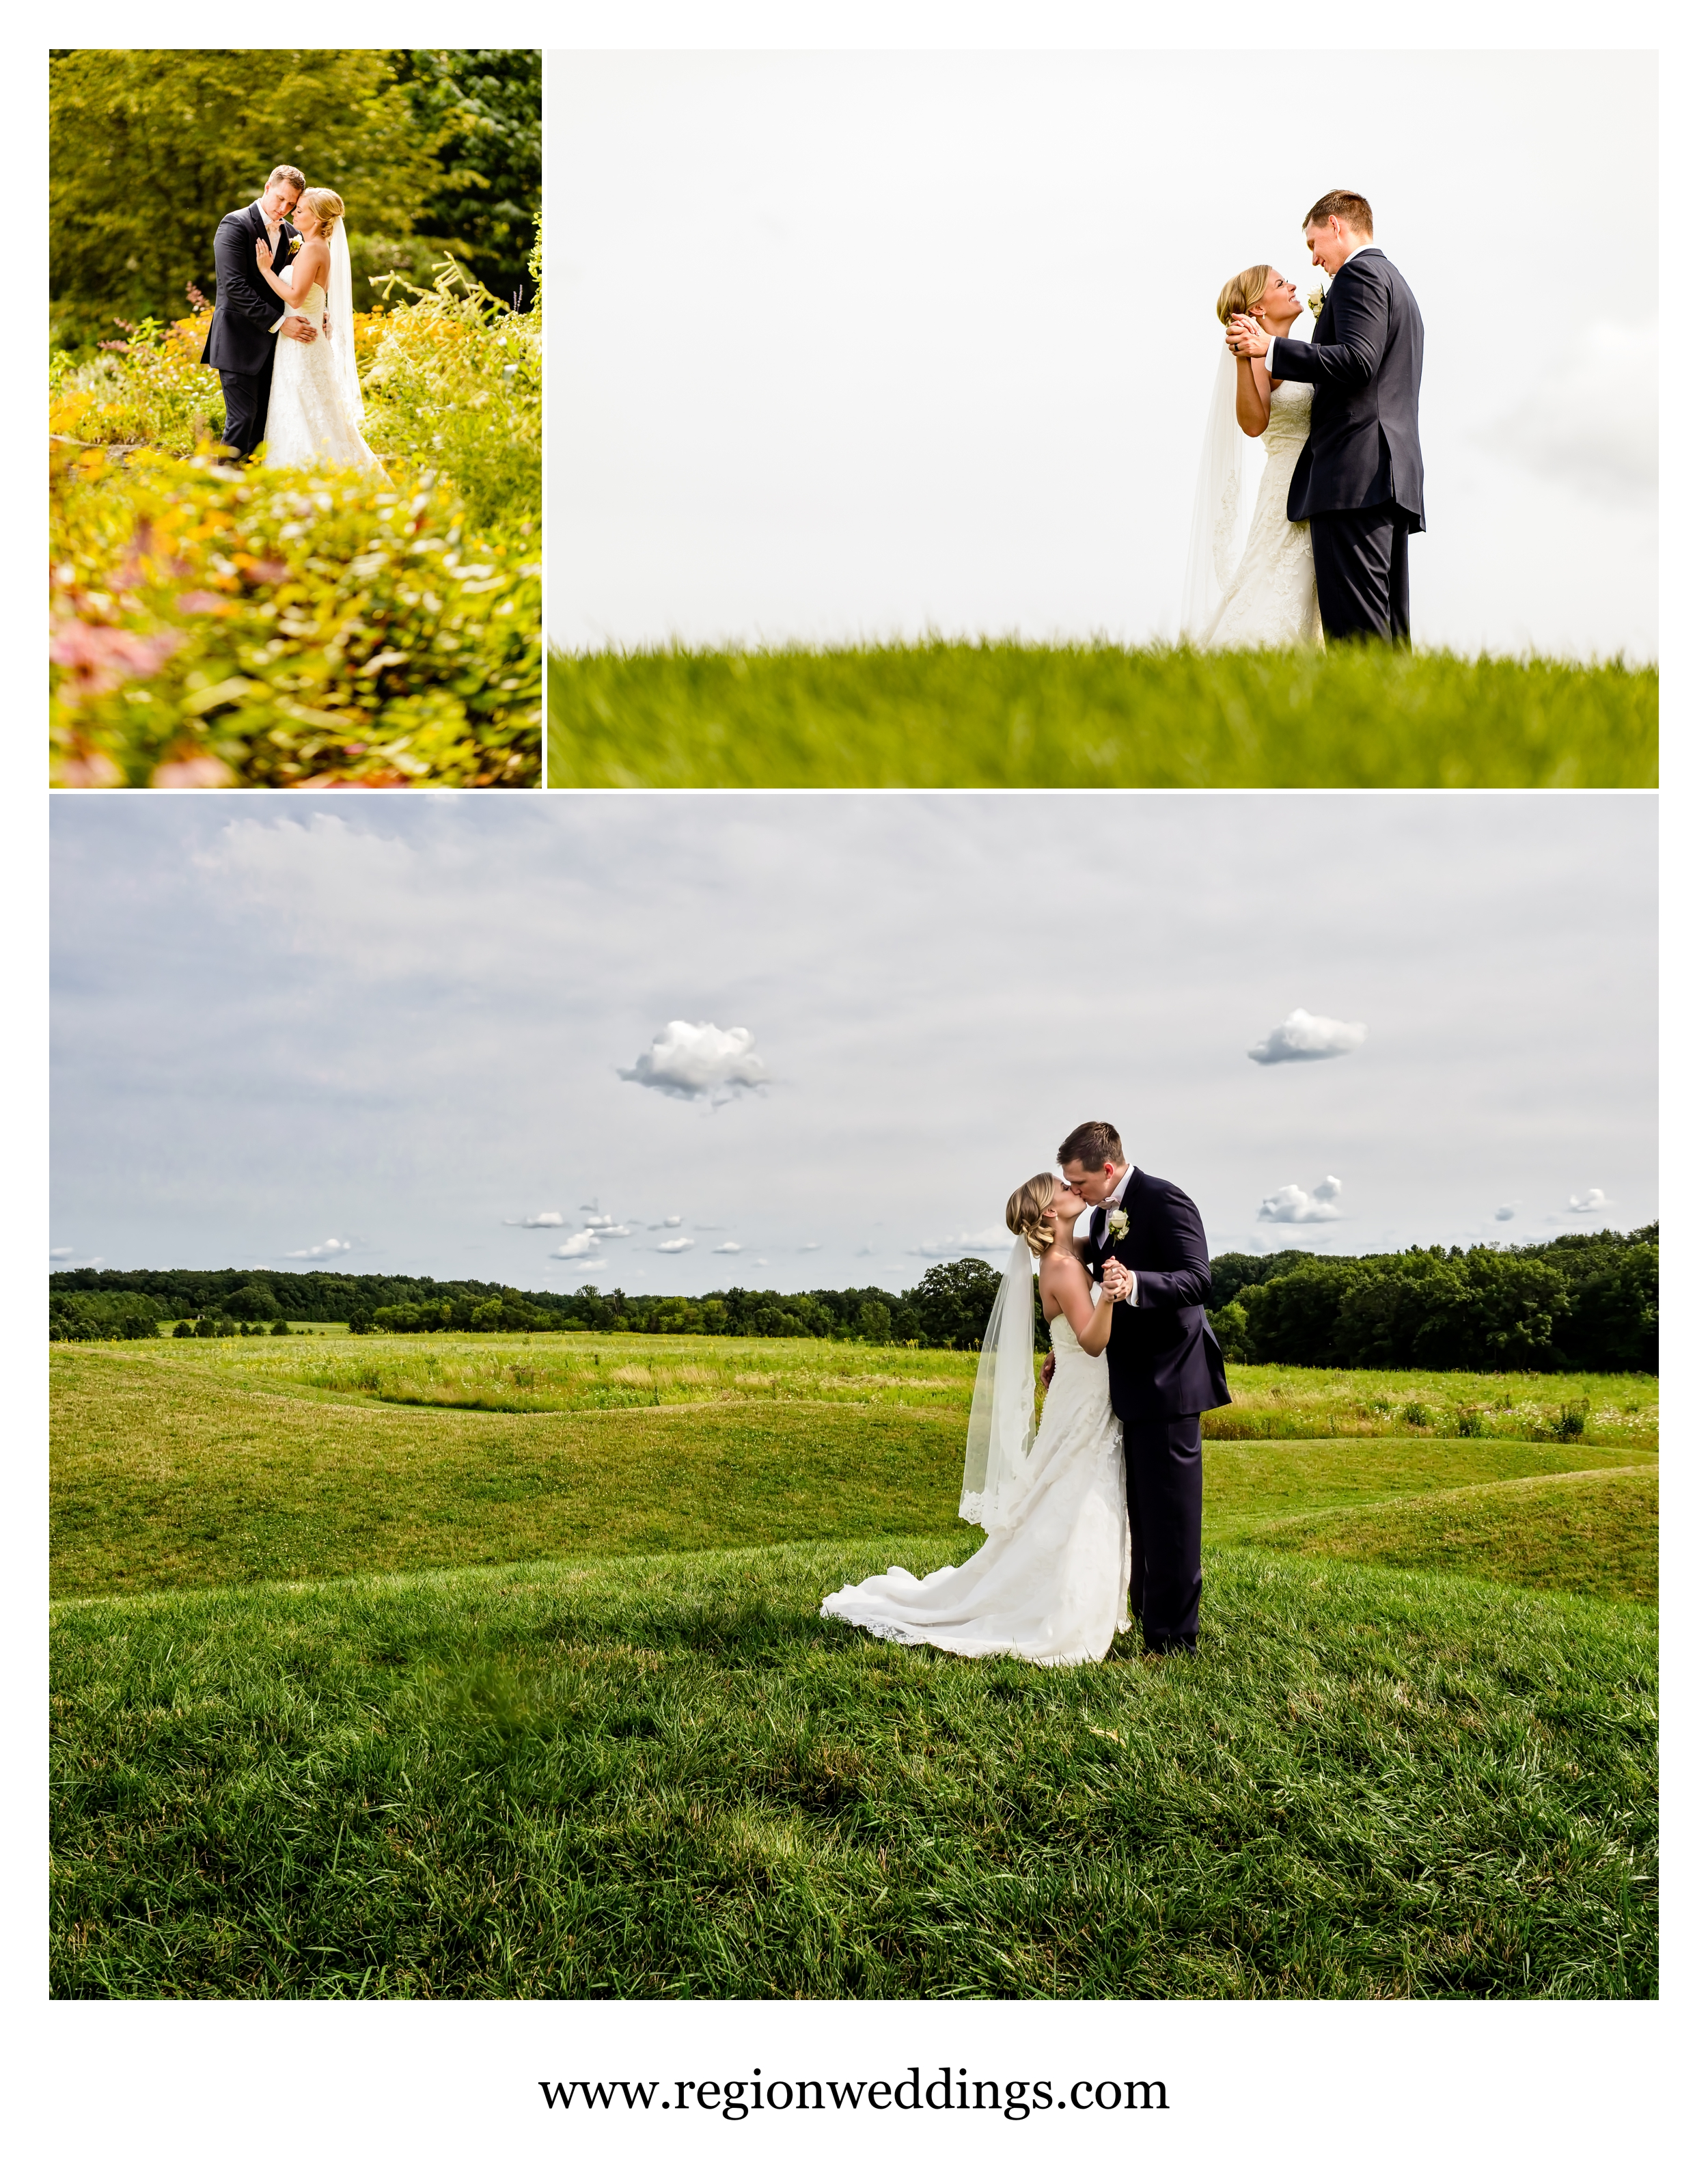 The bride and groom slow dance on the rolling hills of Taltree Arboretum nature preserve.